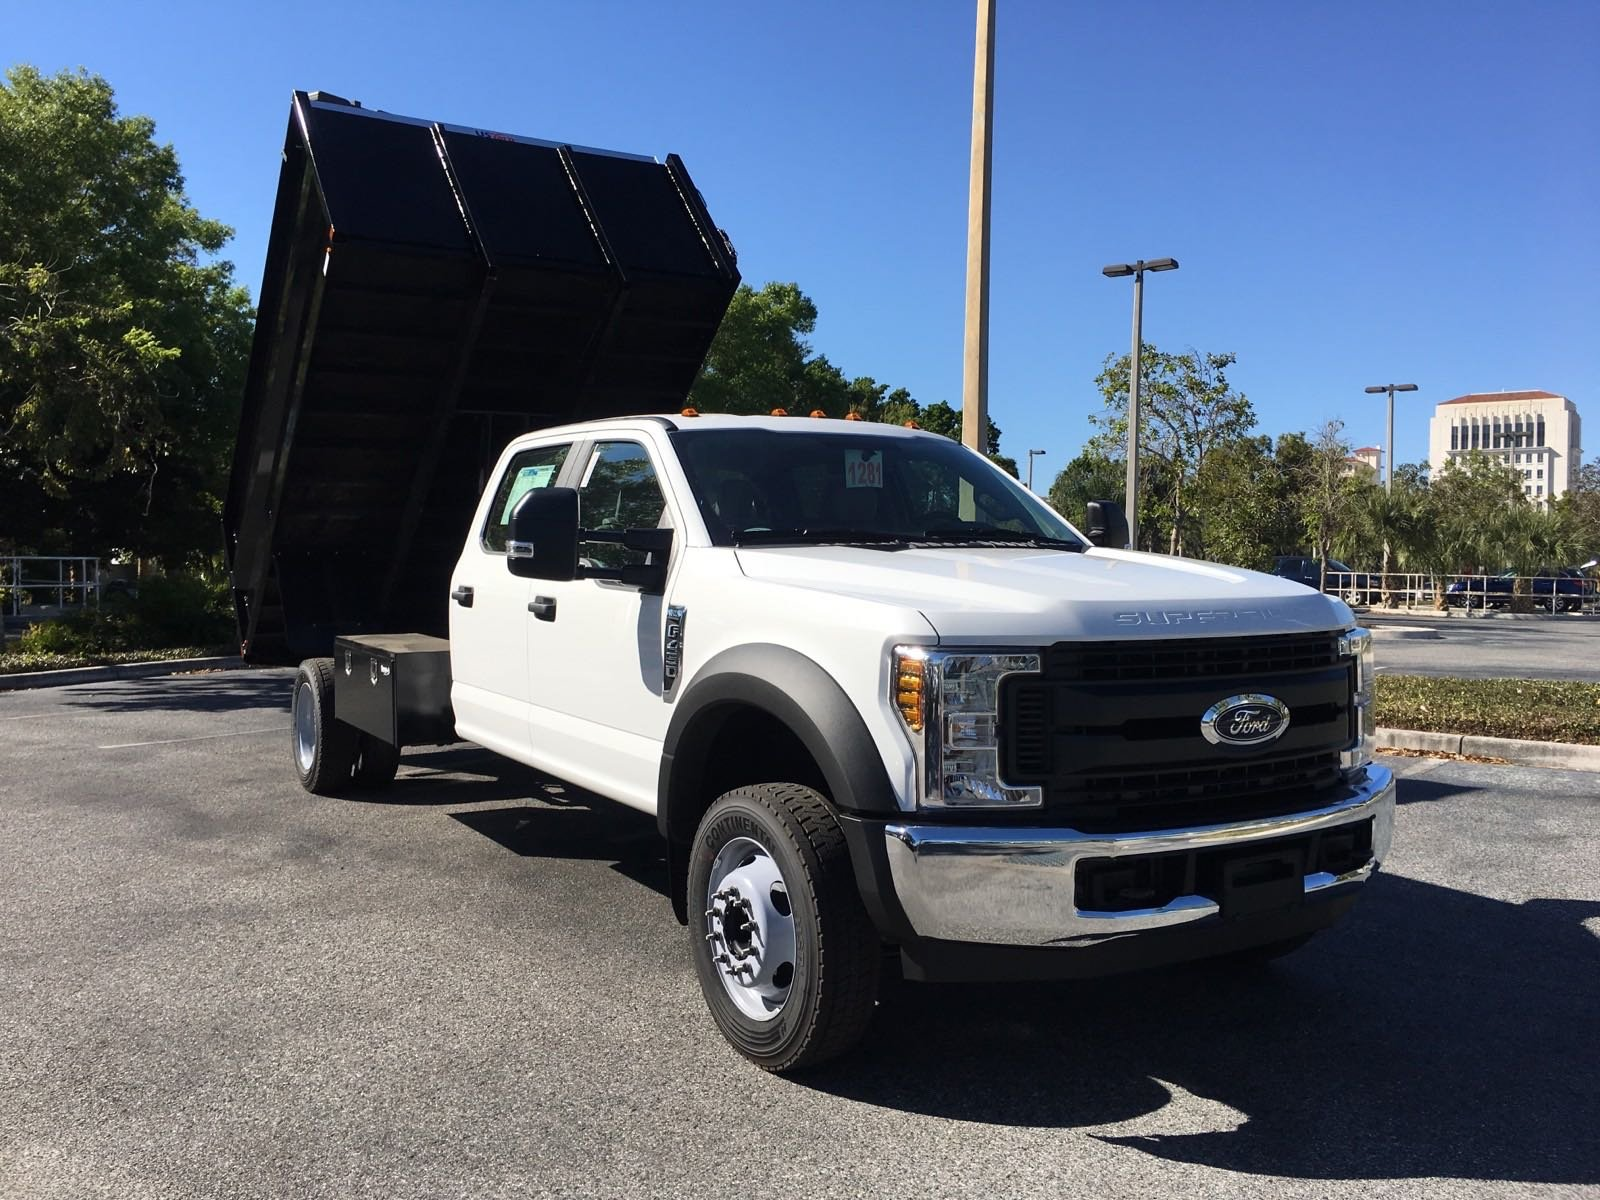 New 2018 Ford Super Duty F 450 DRW XL 12FT STEEL DUMPBODY Crew Cab